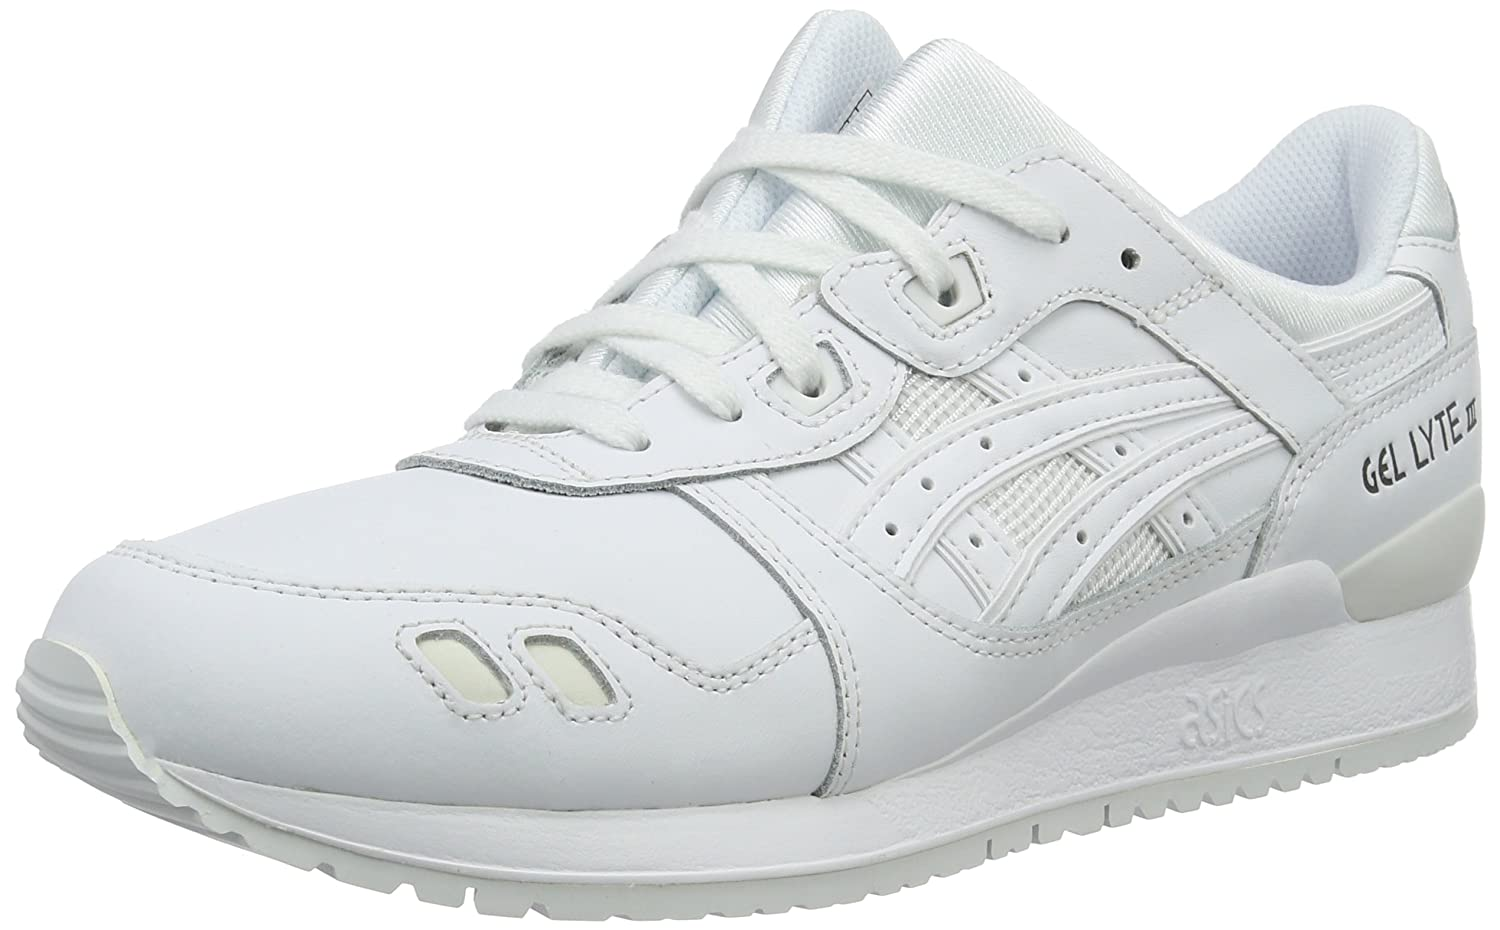 meet d892b b4732 ASICS GEL-LYTE III Adult's Sneakers (HL6A2)